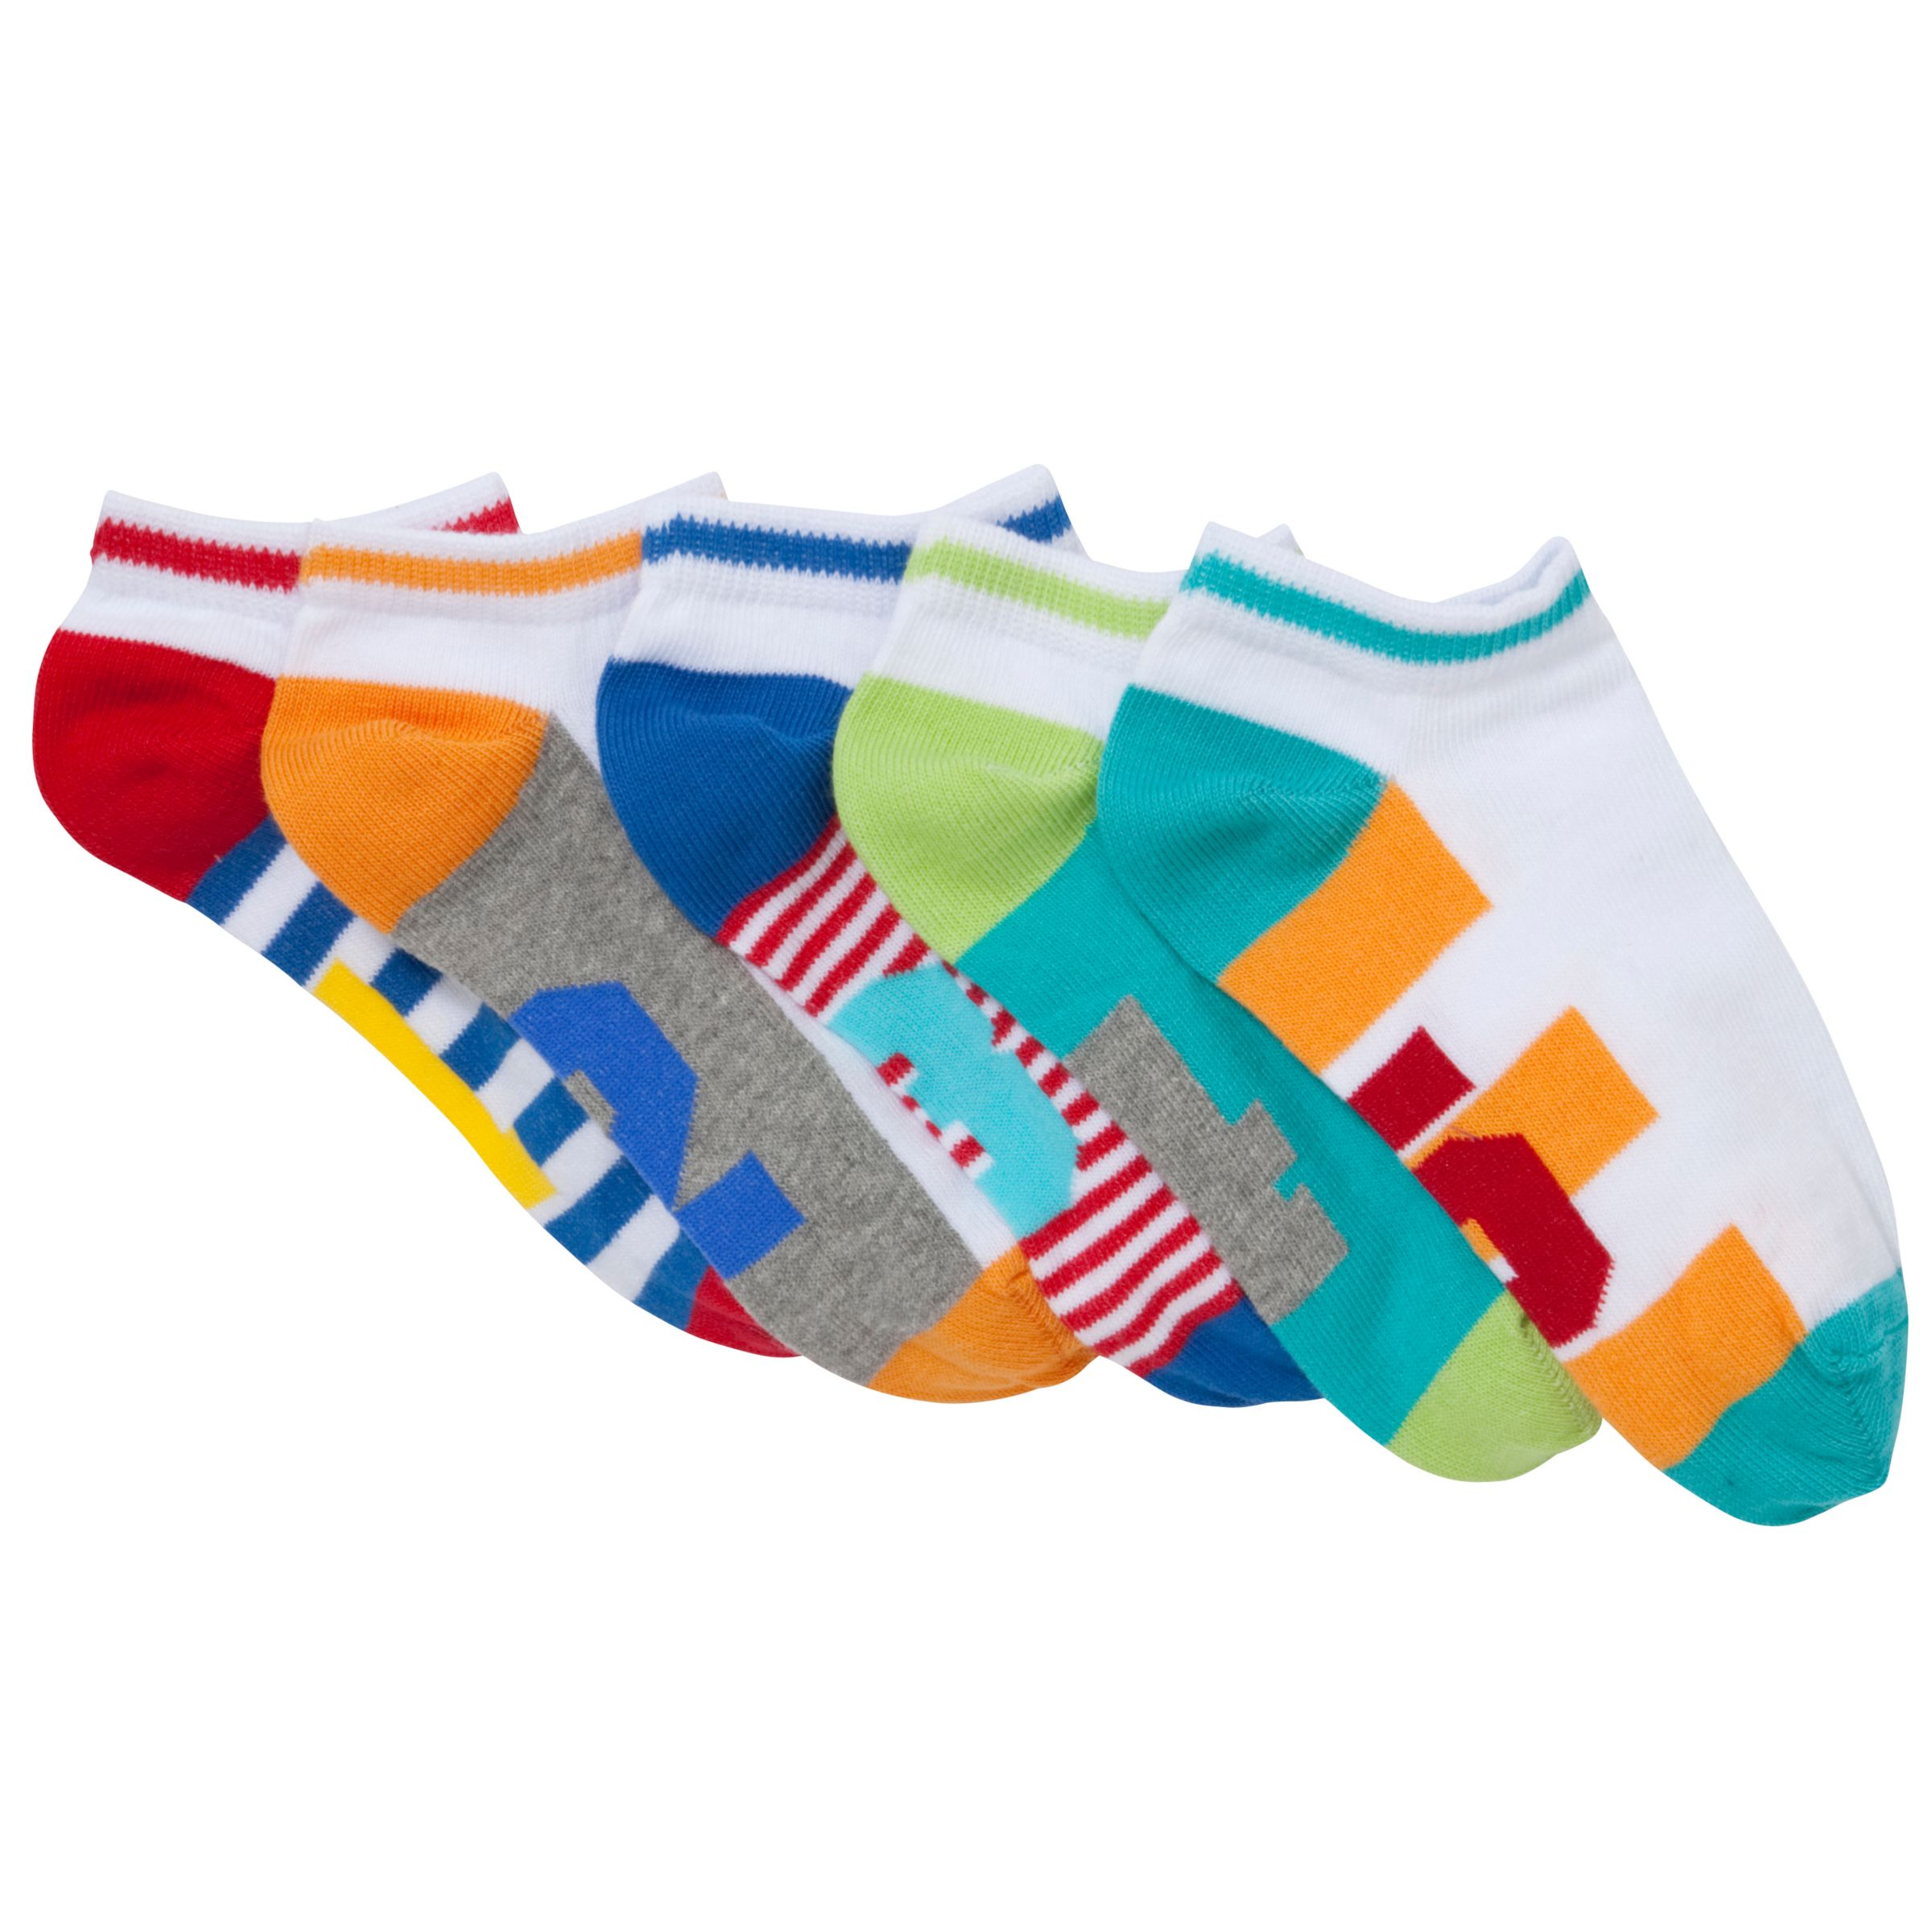 John Lewis Boy Trainer Socks, Pack of 5, Multi